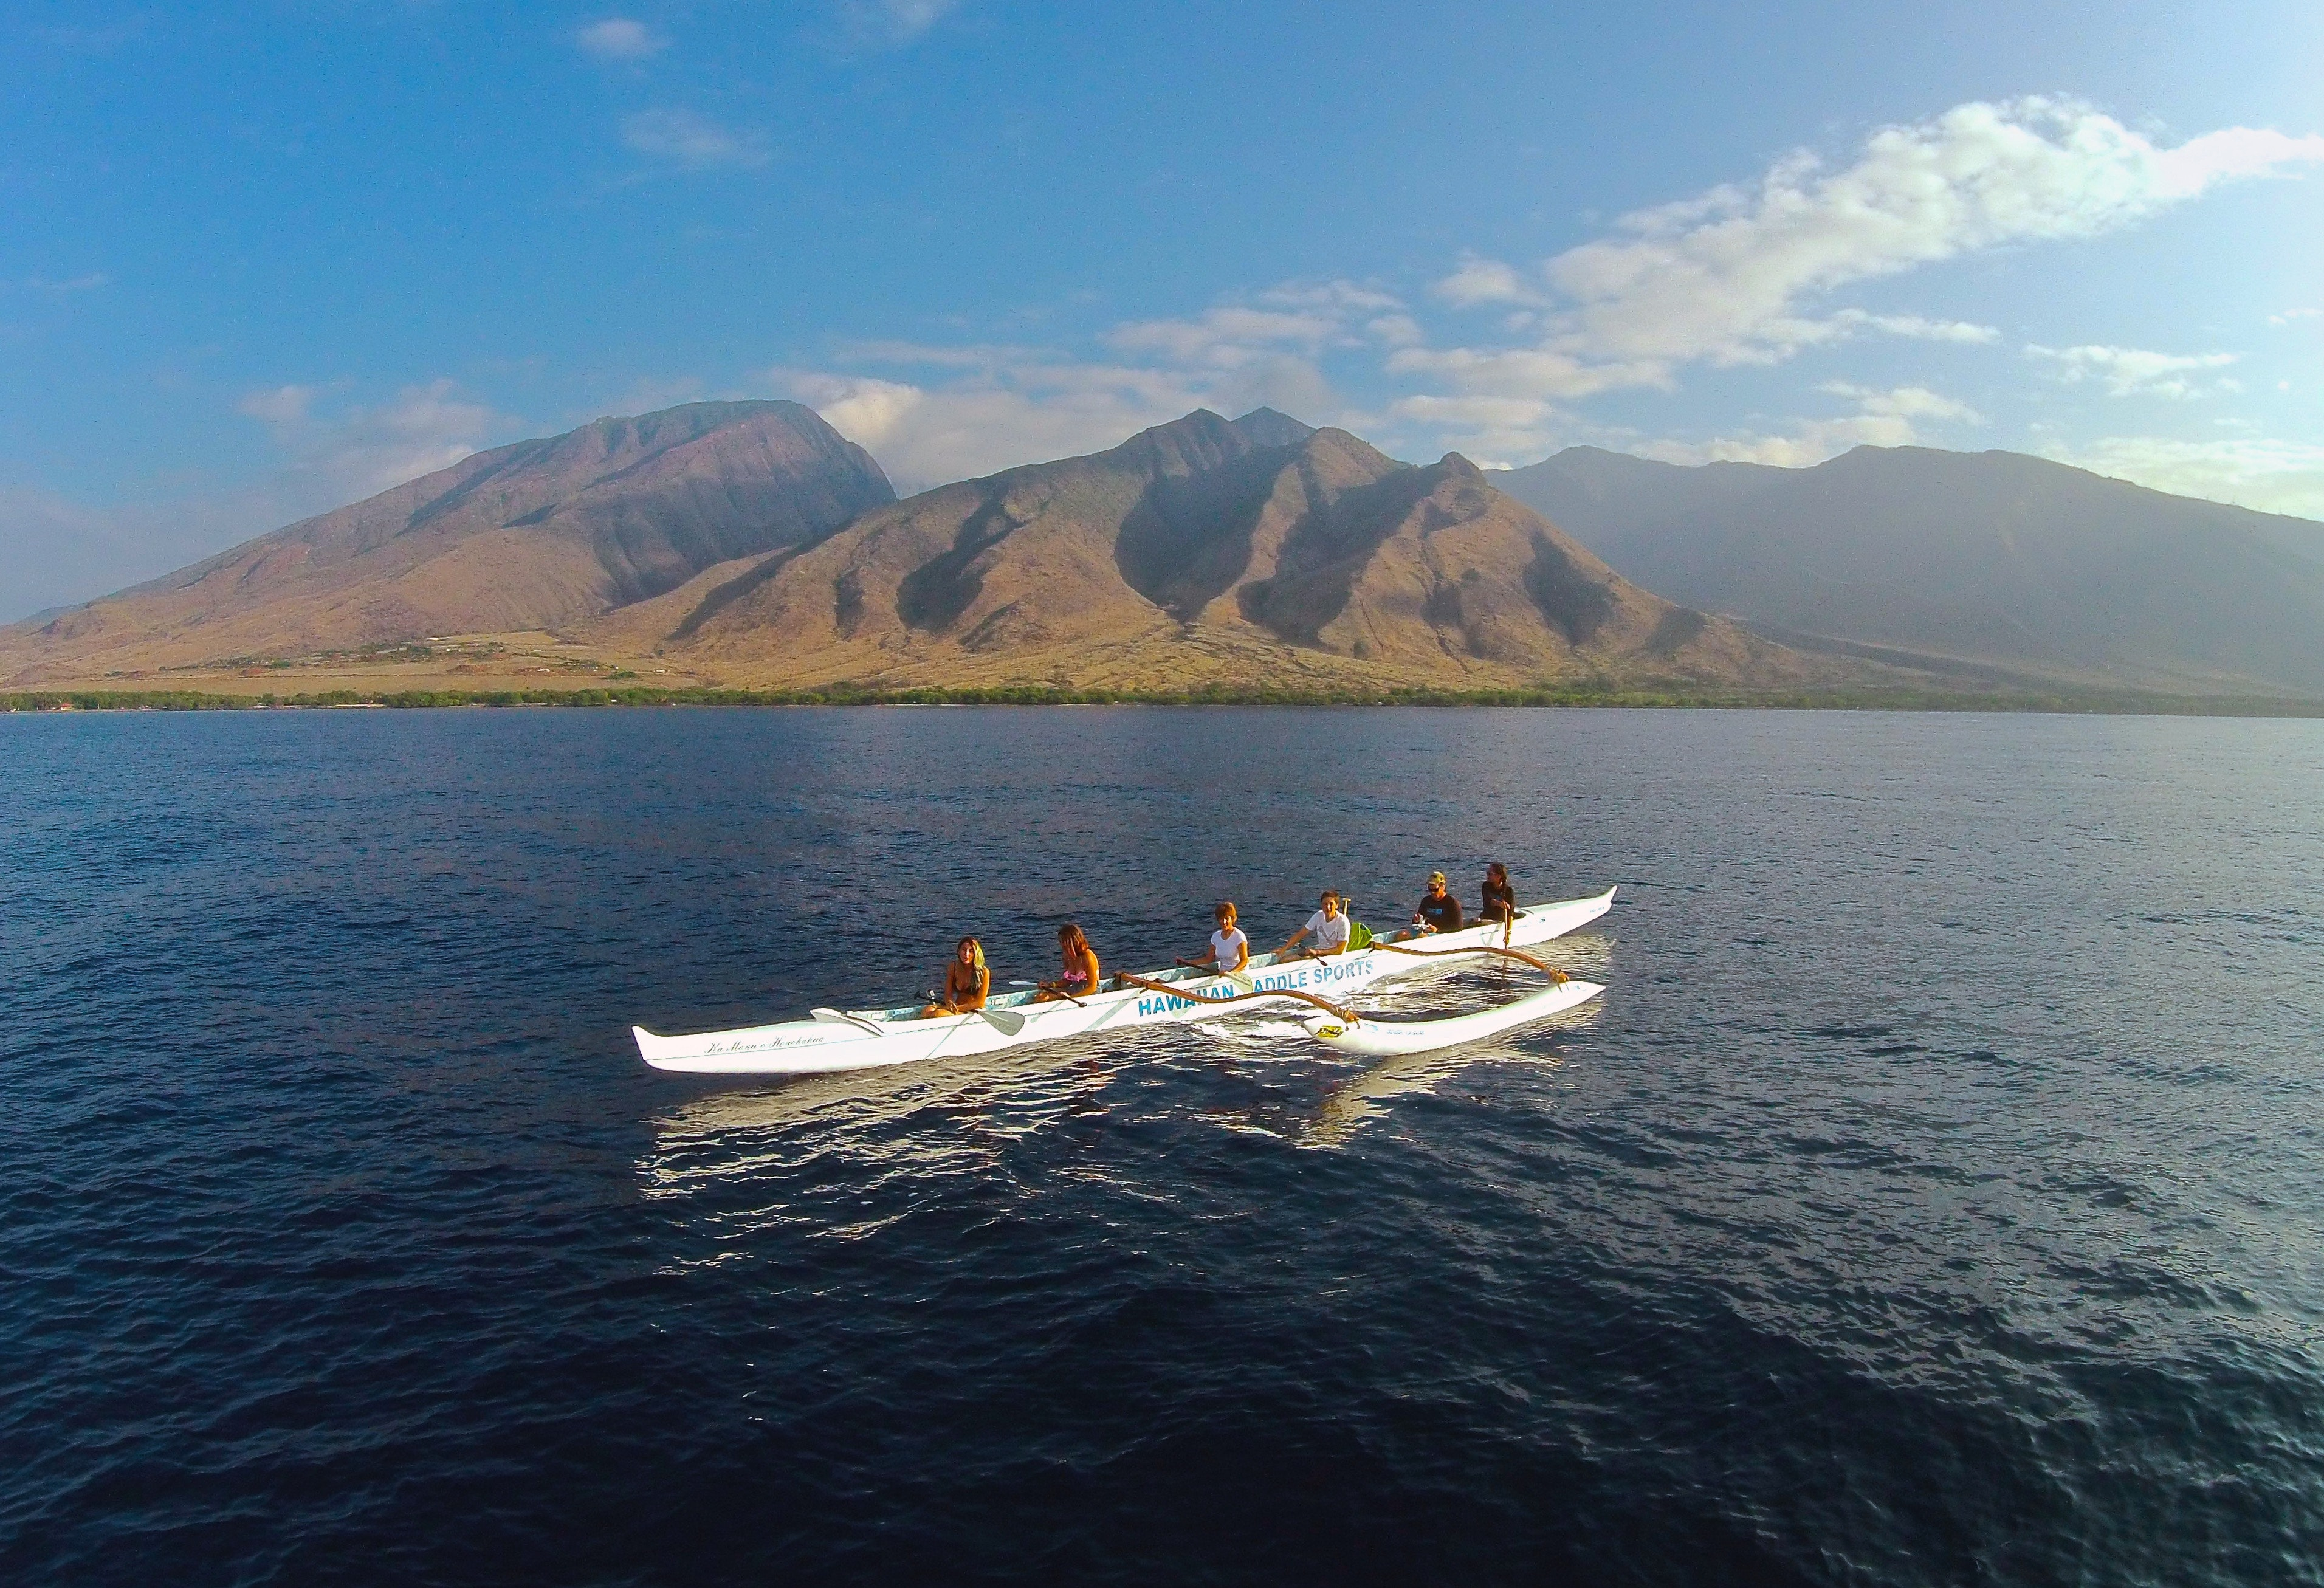 Go for a paddle with Hawaiian Paddle Sports